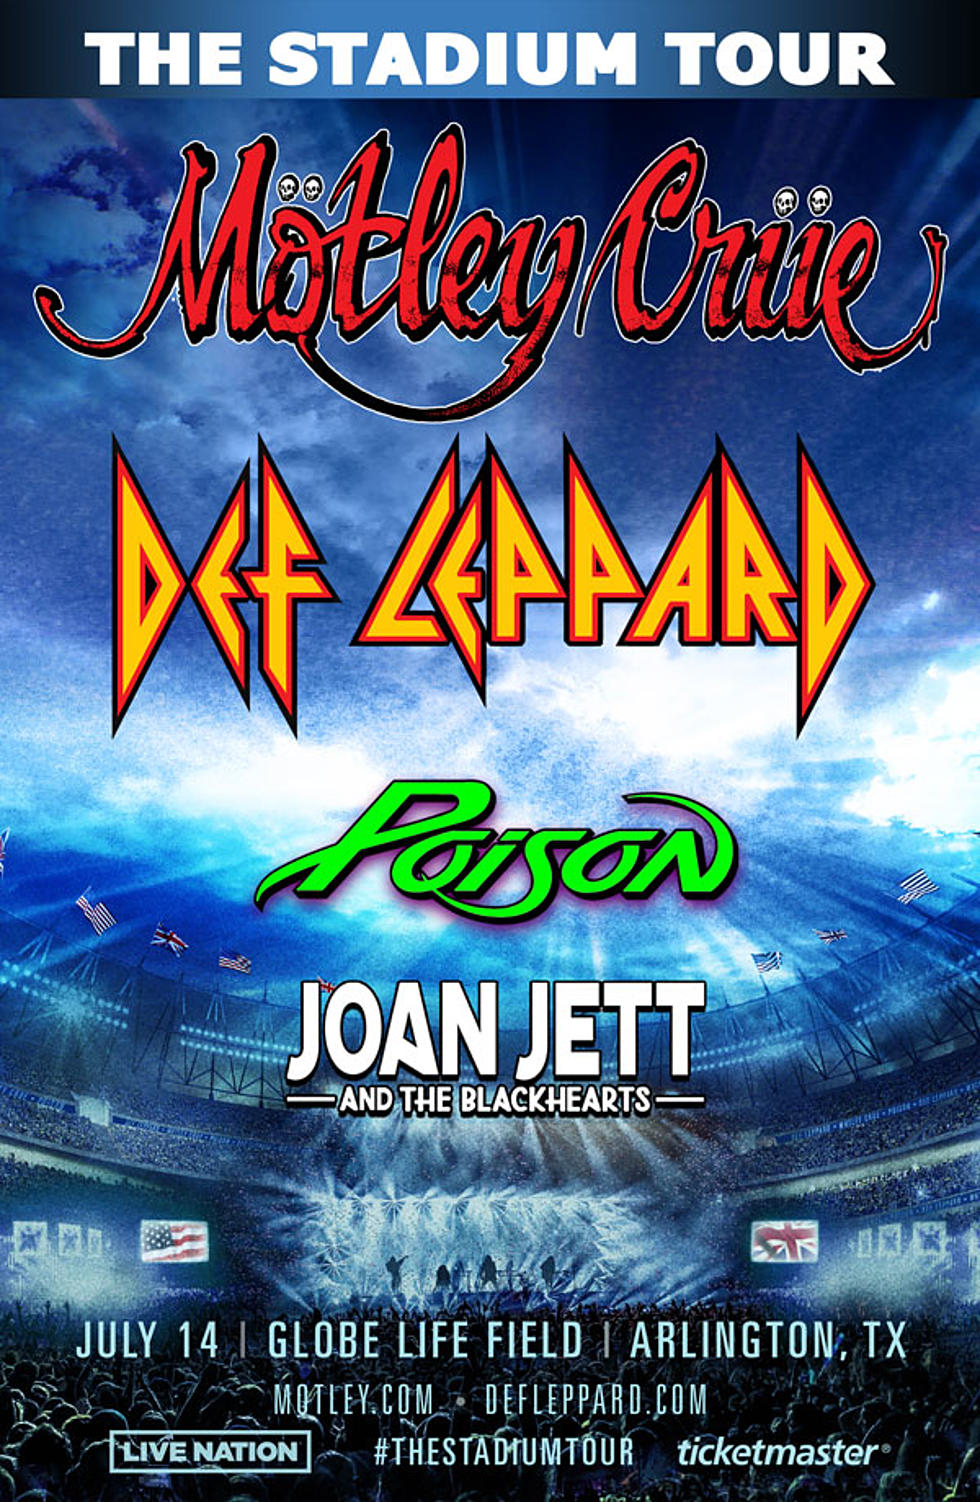 joan jett tour 2020